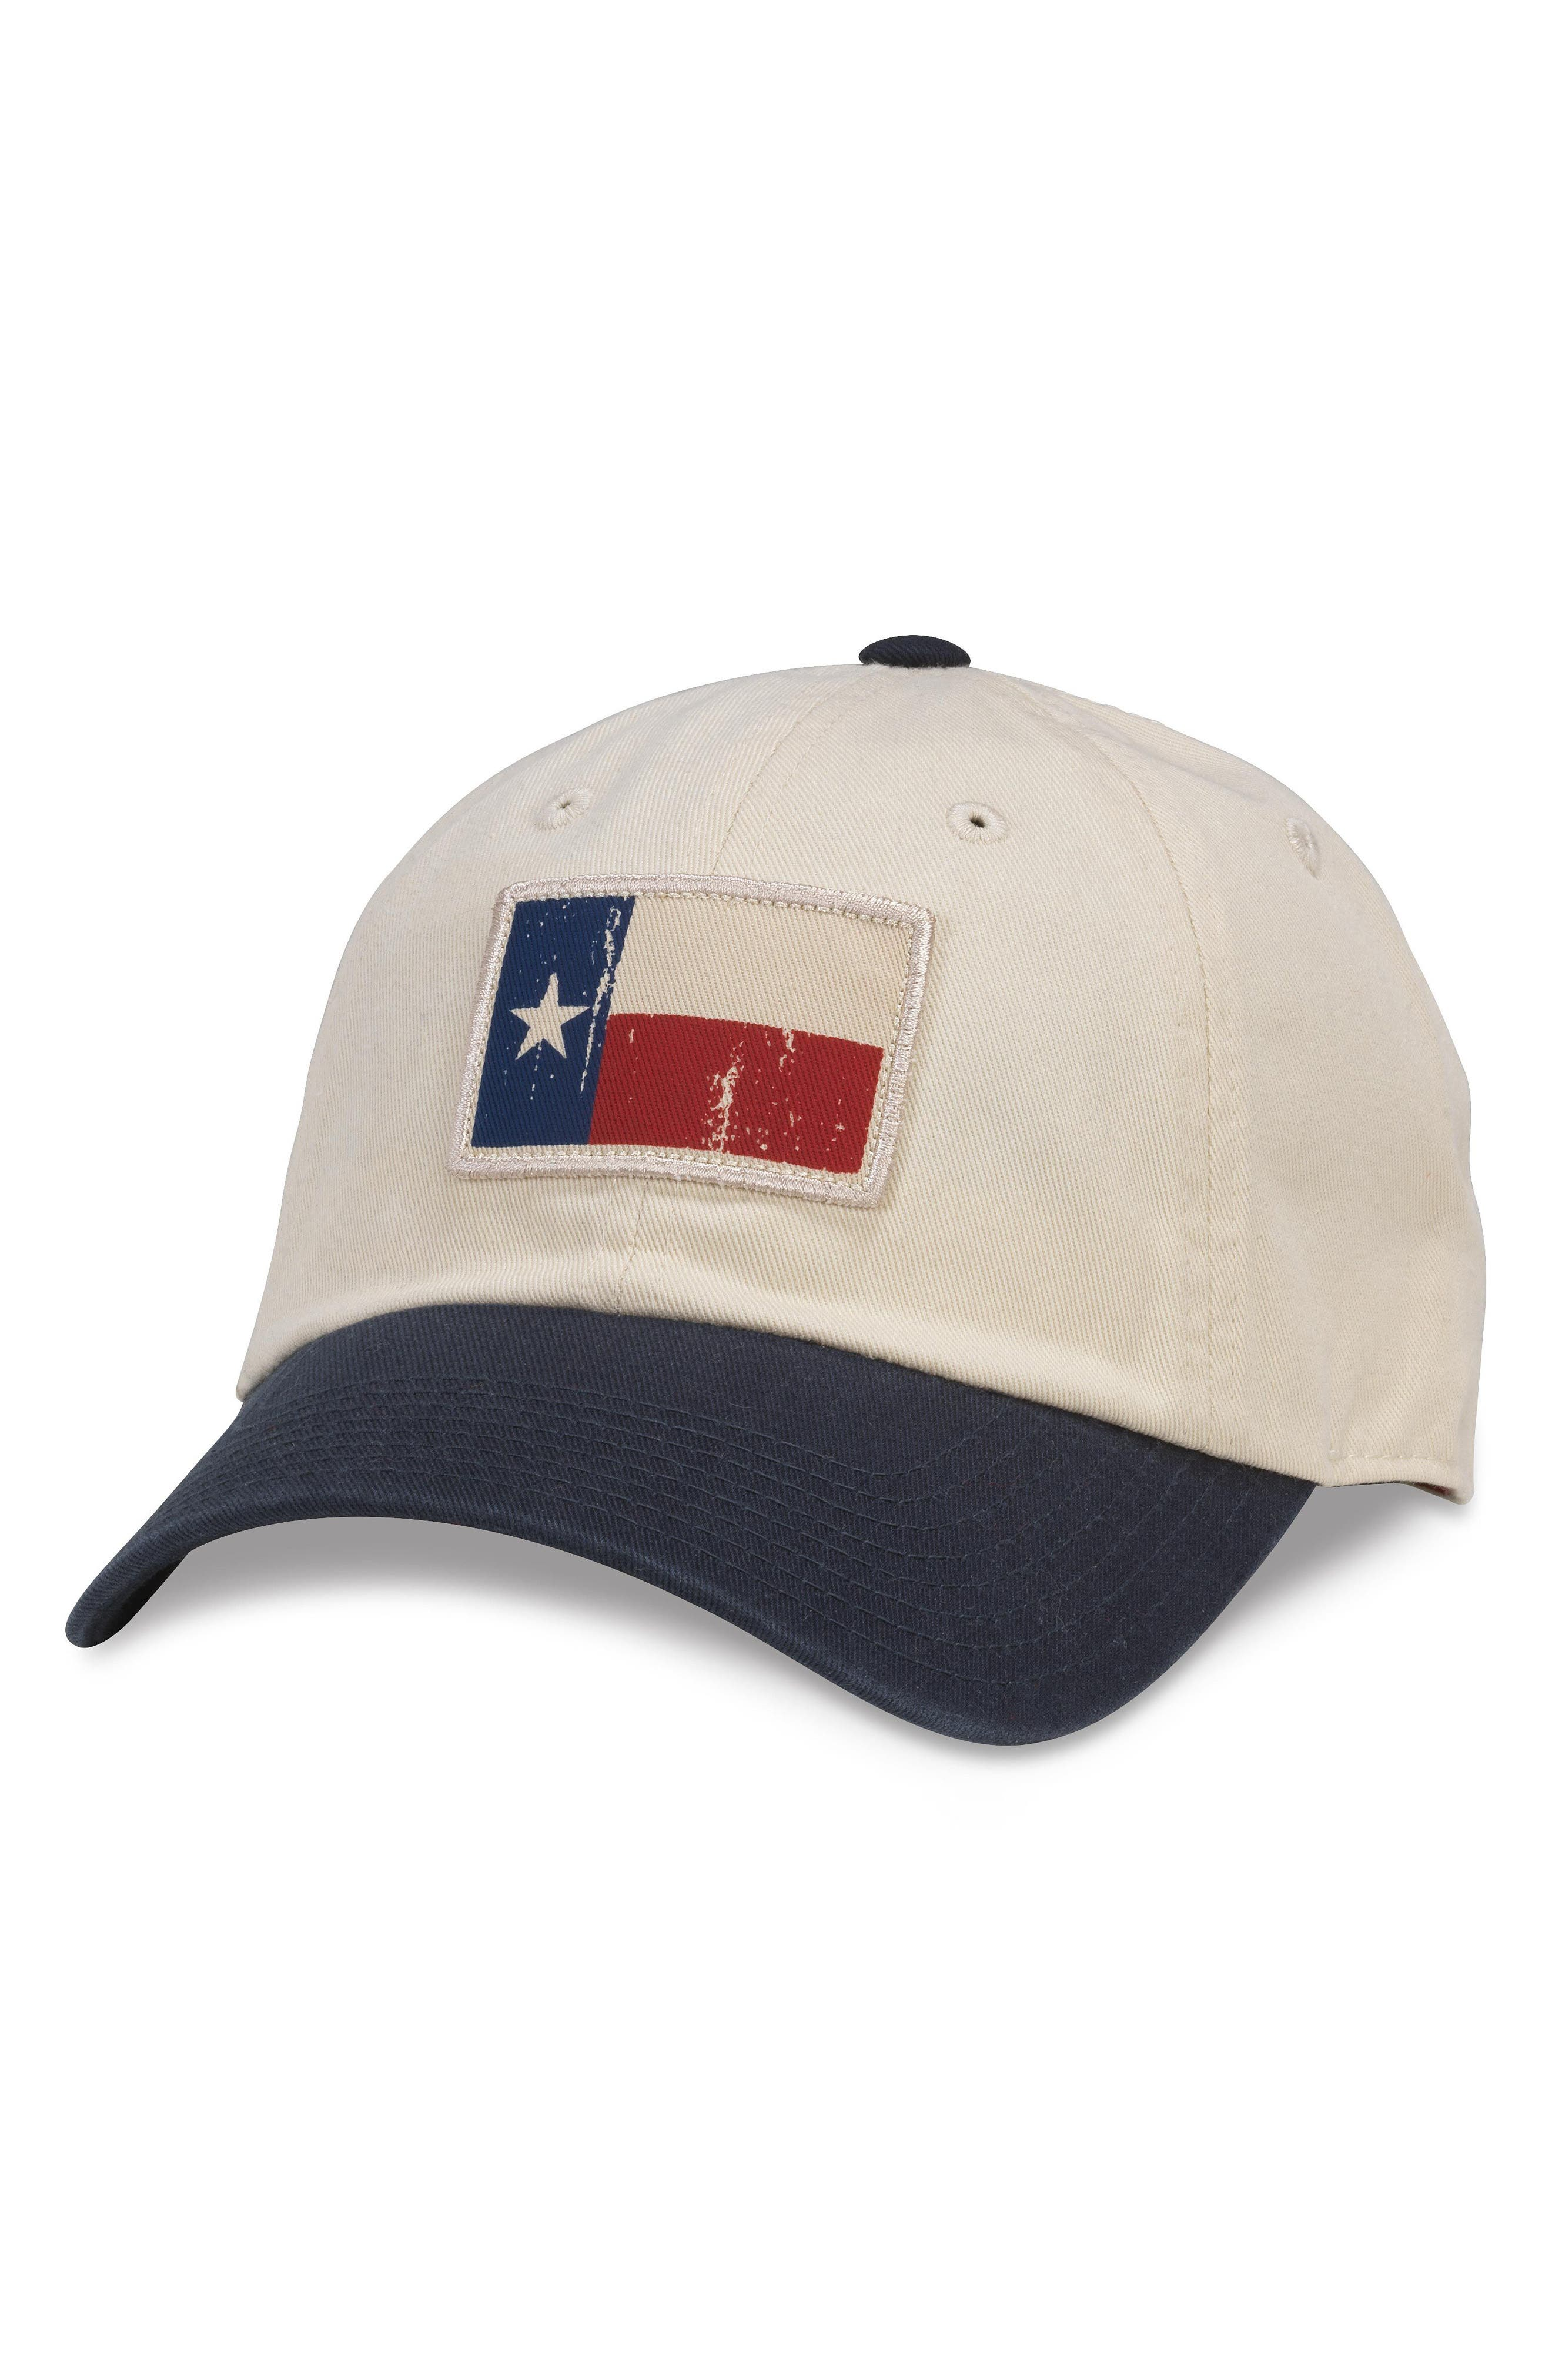 Badger Slouch - Texas Baseball Cap,                         Main,                         color, Ivory/ Navy